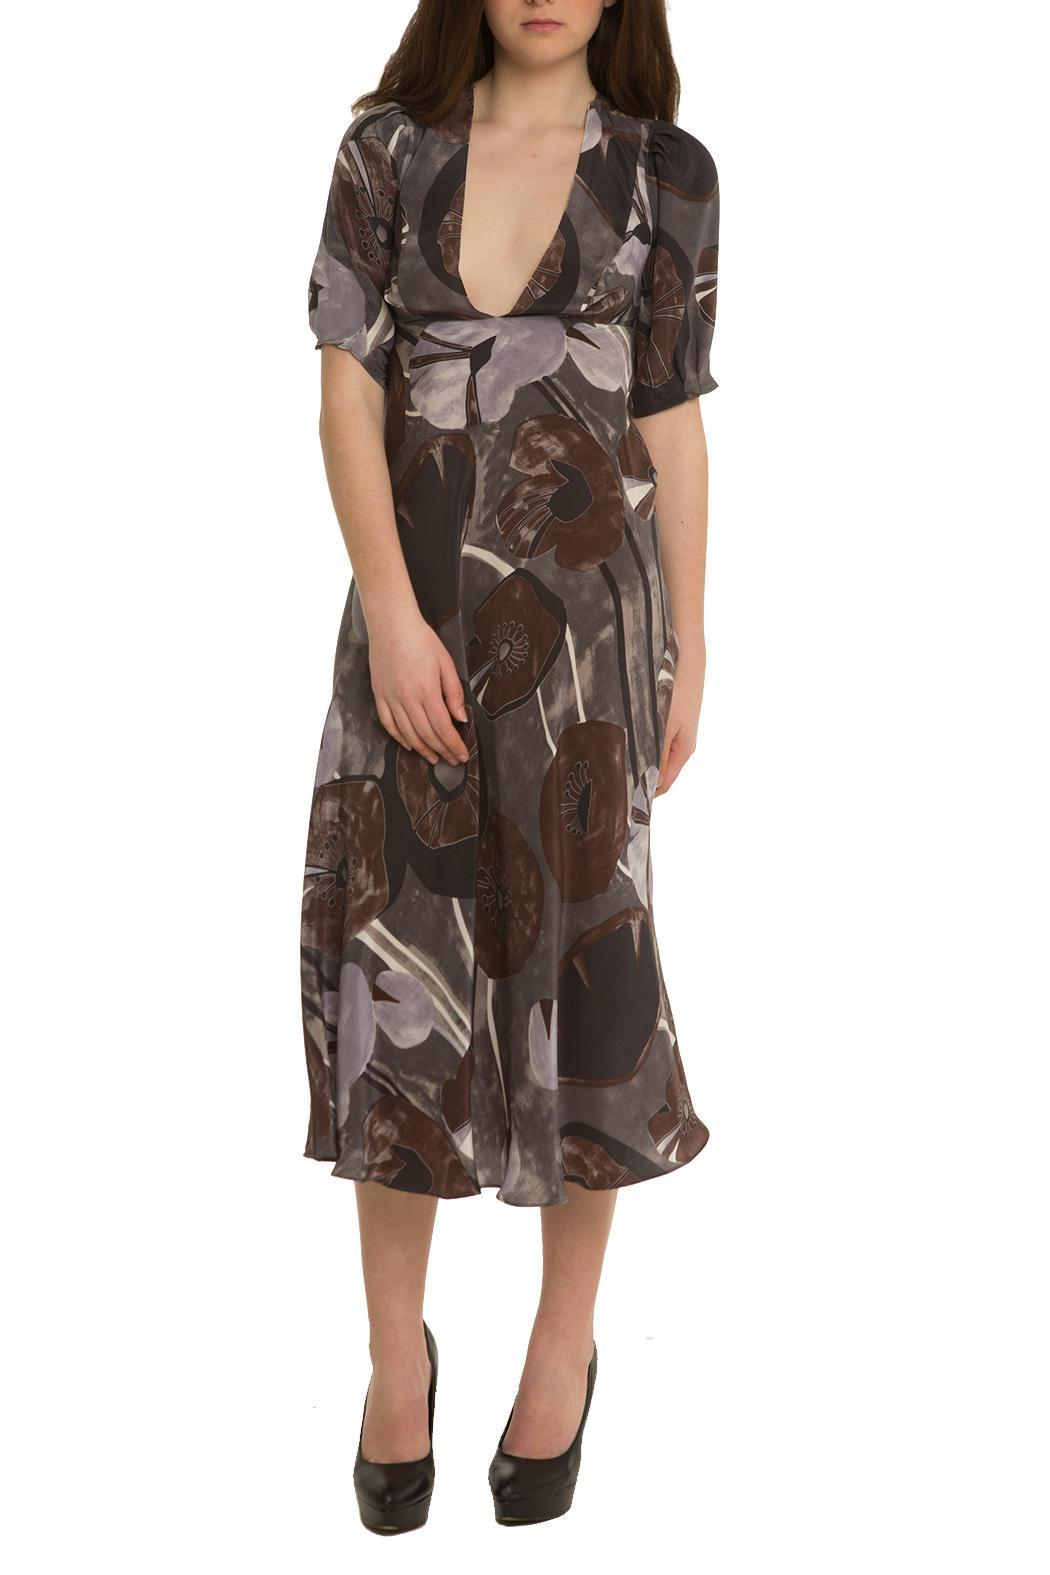 OHLENDORF atelier Silk Floral Dress - Main Image